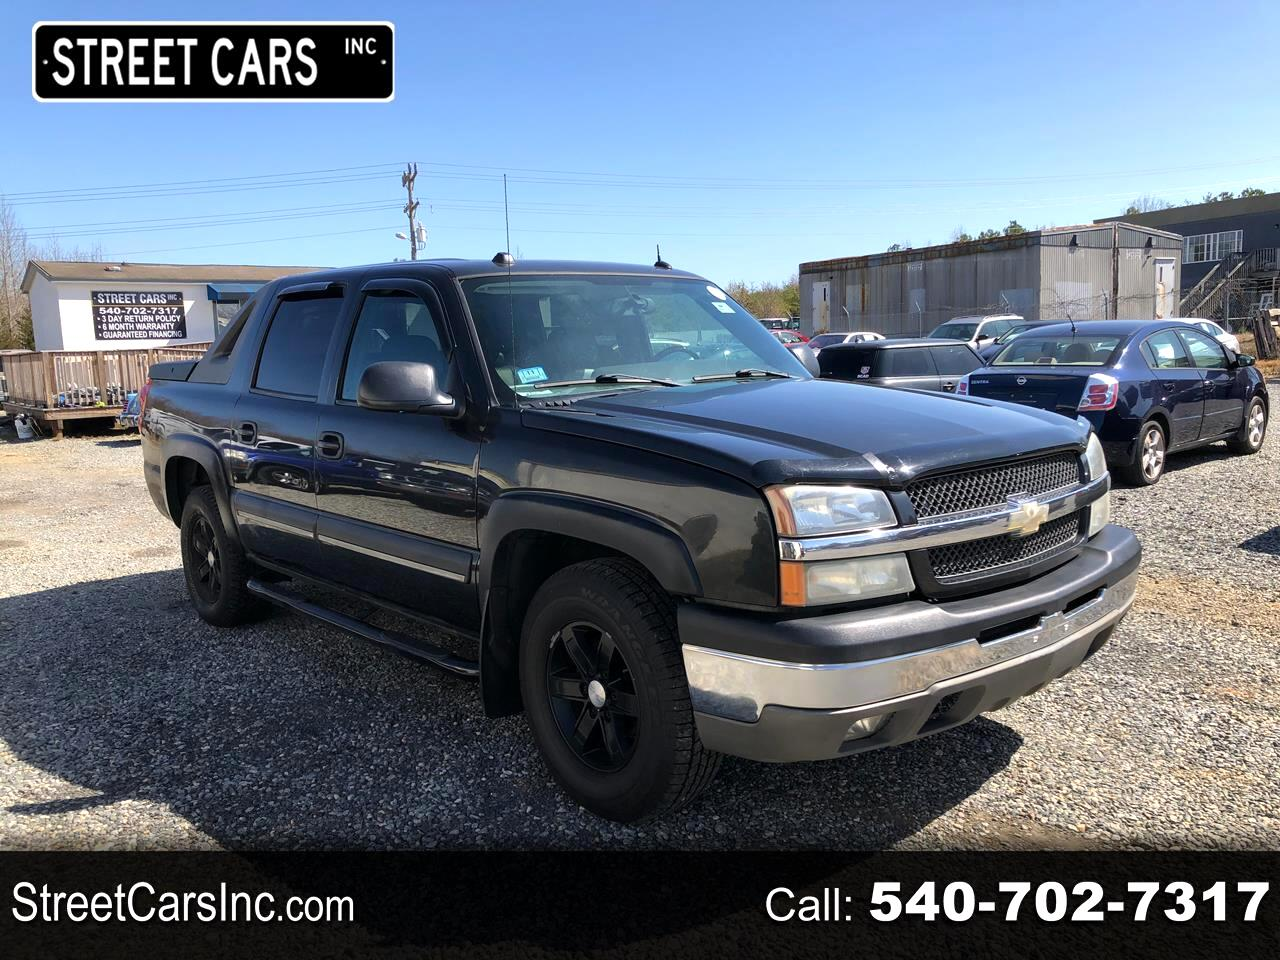 """Chevrolet Avalanche 1500 5dr Crew Cab 130"""" WB 4WD Z71 2004"""